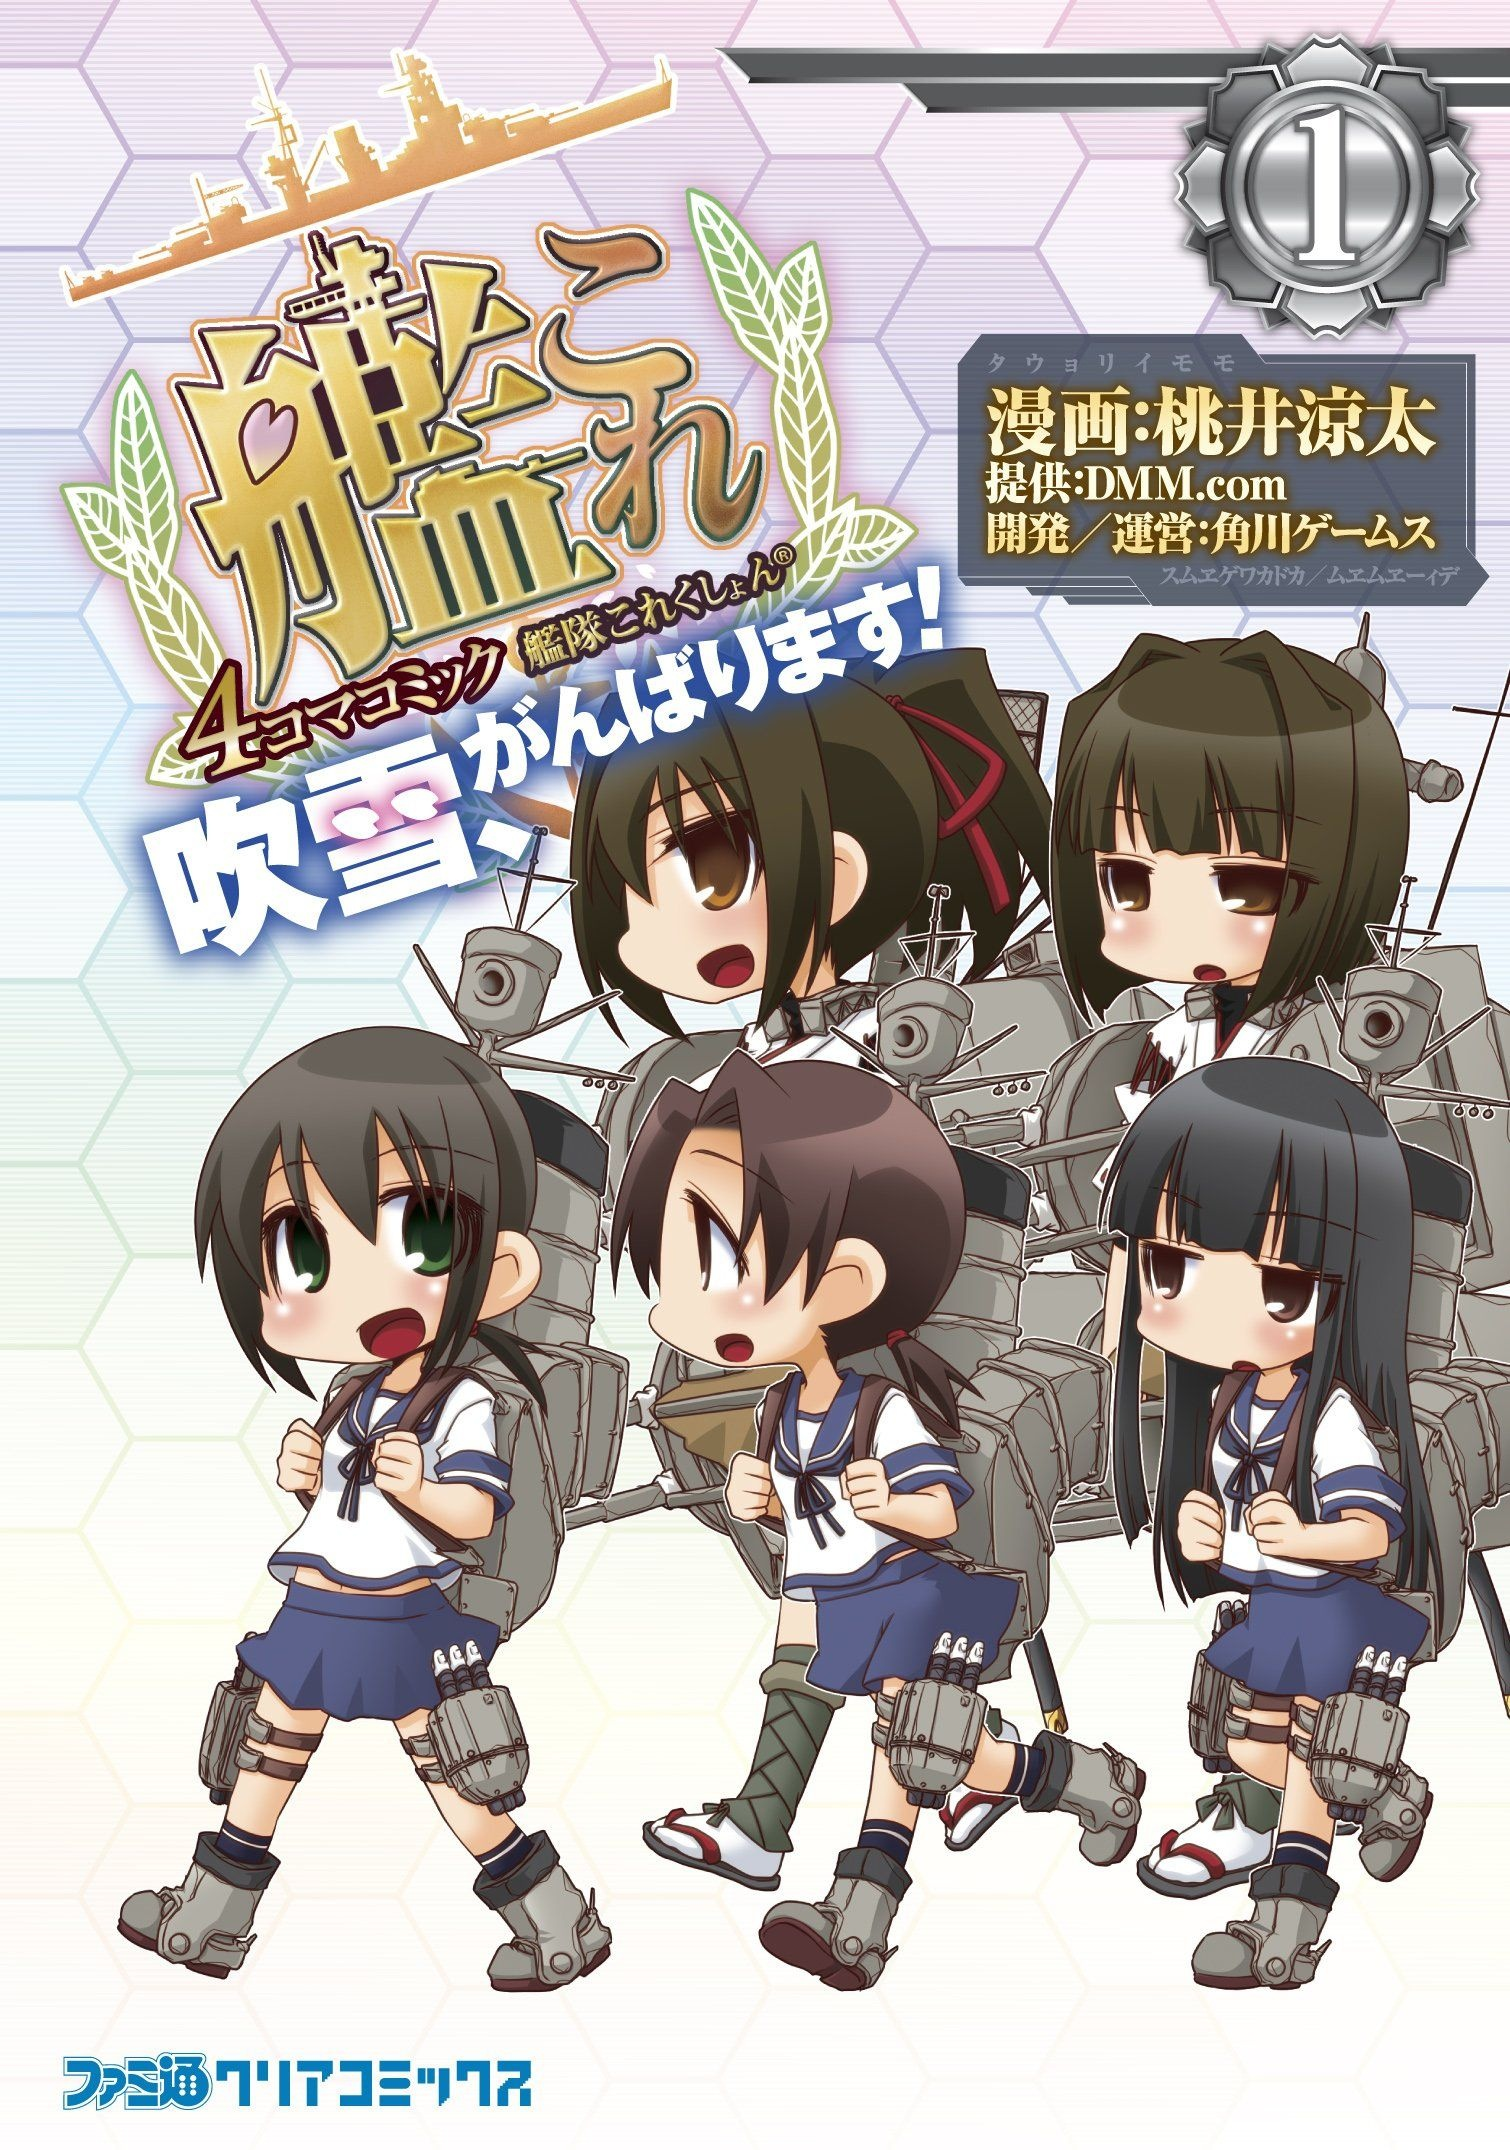 kantai collection 4koma comic fubuki ganbarimasu